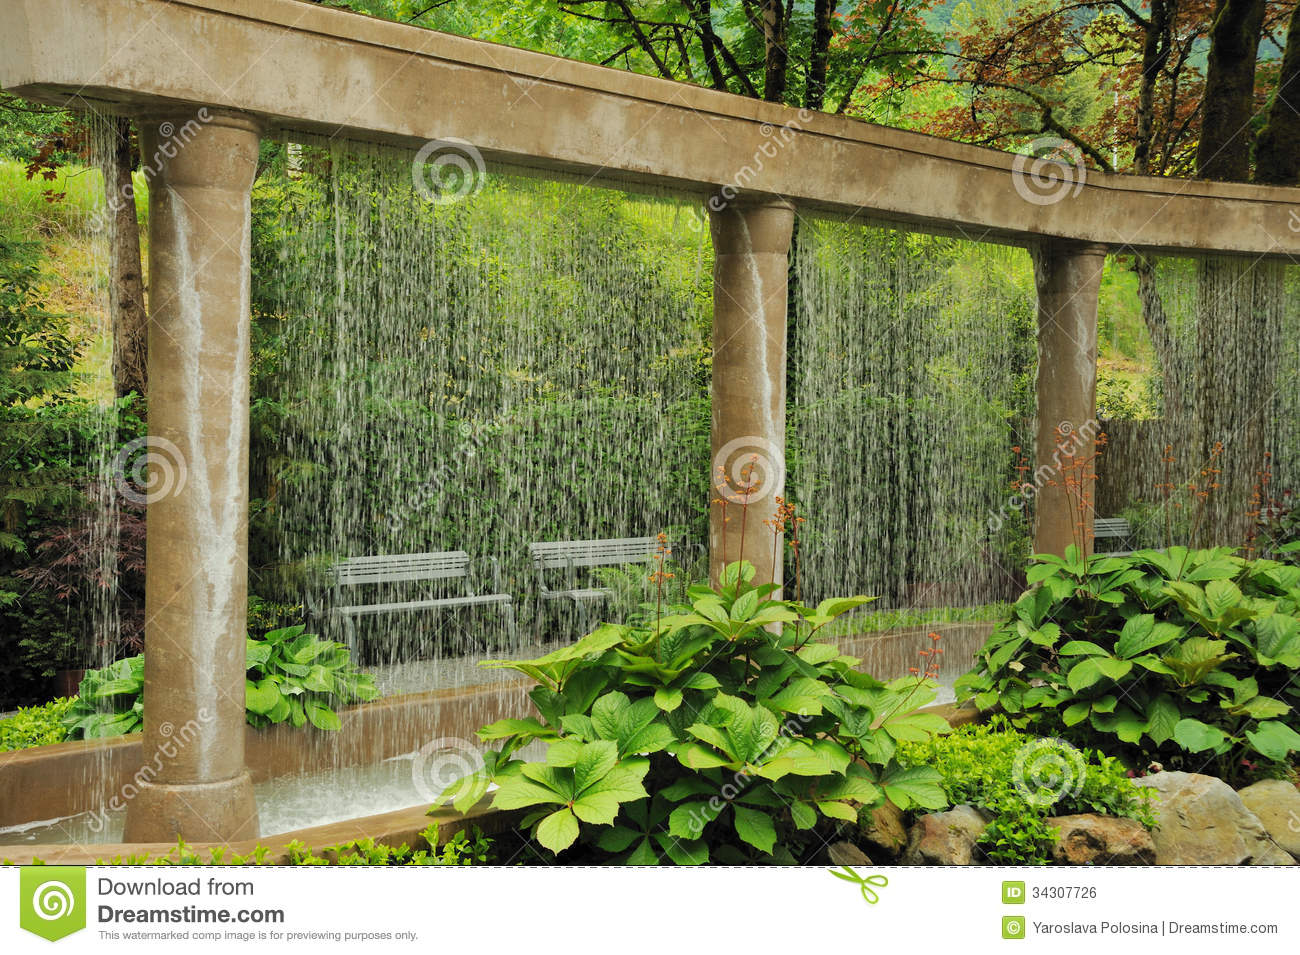 Decorative Water Wall In The Garden Stock Photo  Image of